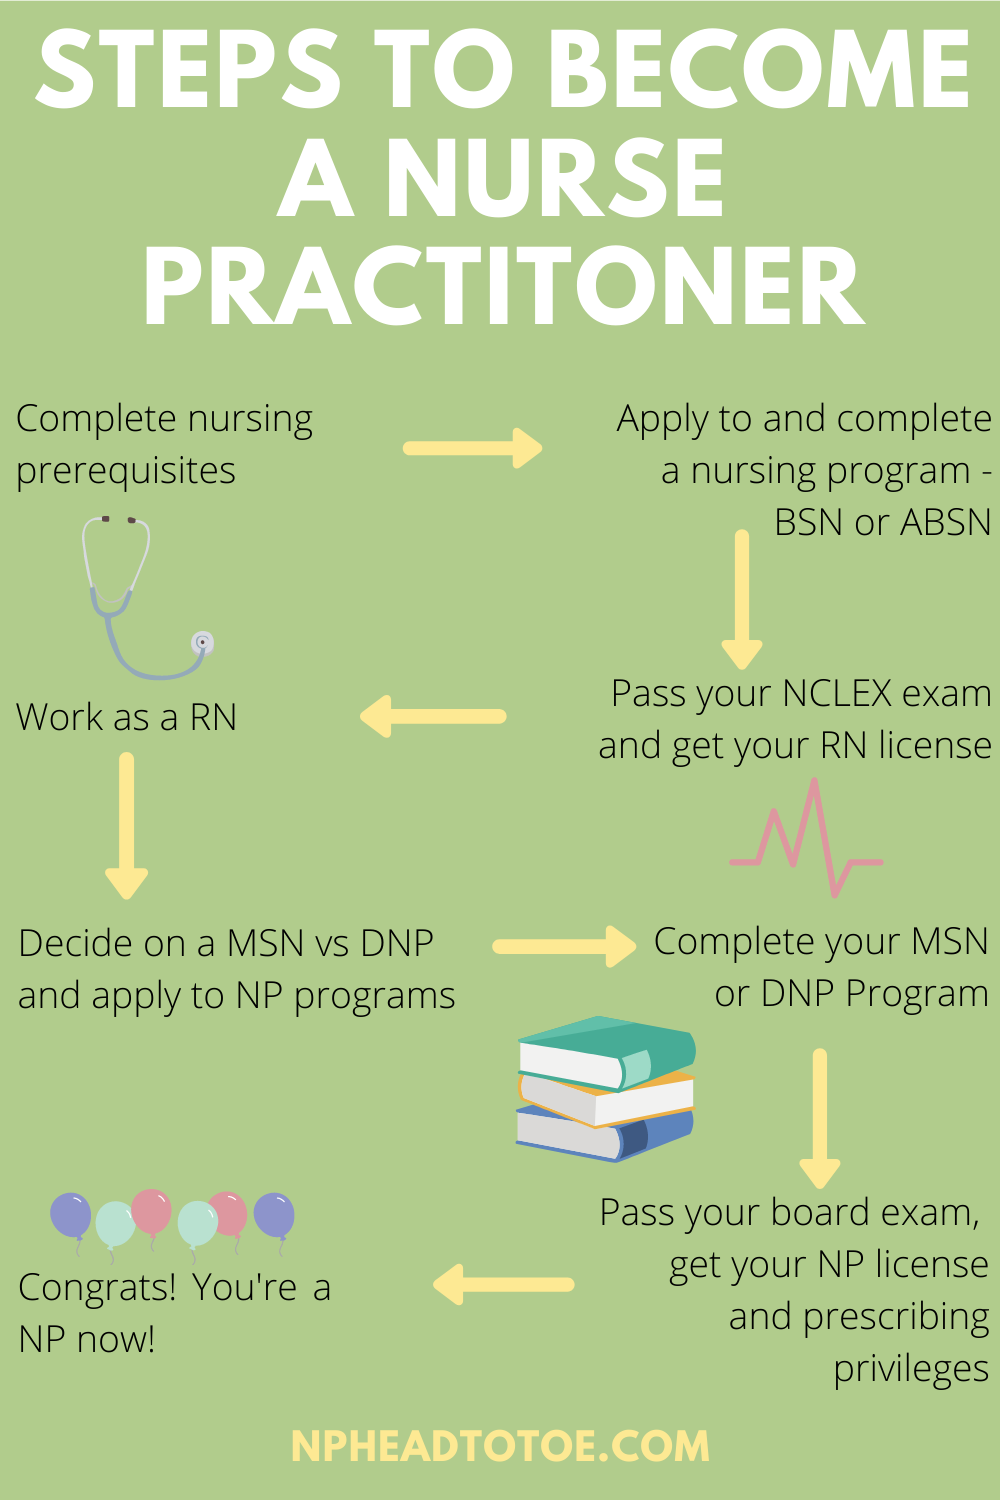 How To Become A Nurse Practitioner In 2021 Becoming A Nurse Practitioner Nurse Practitioner Becoming A Nurse